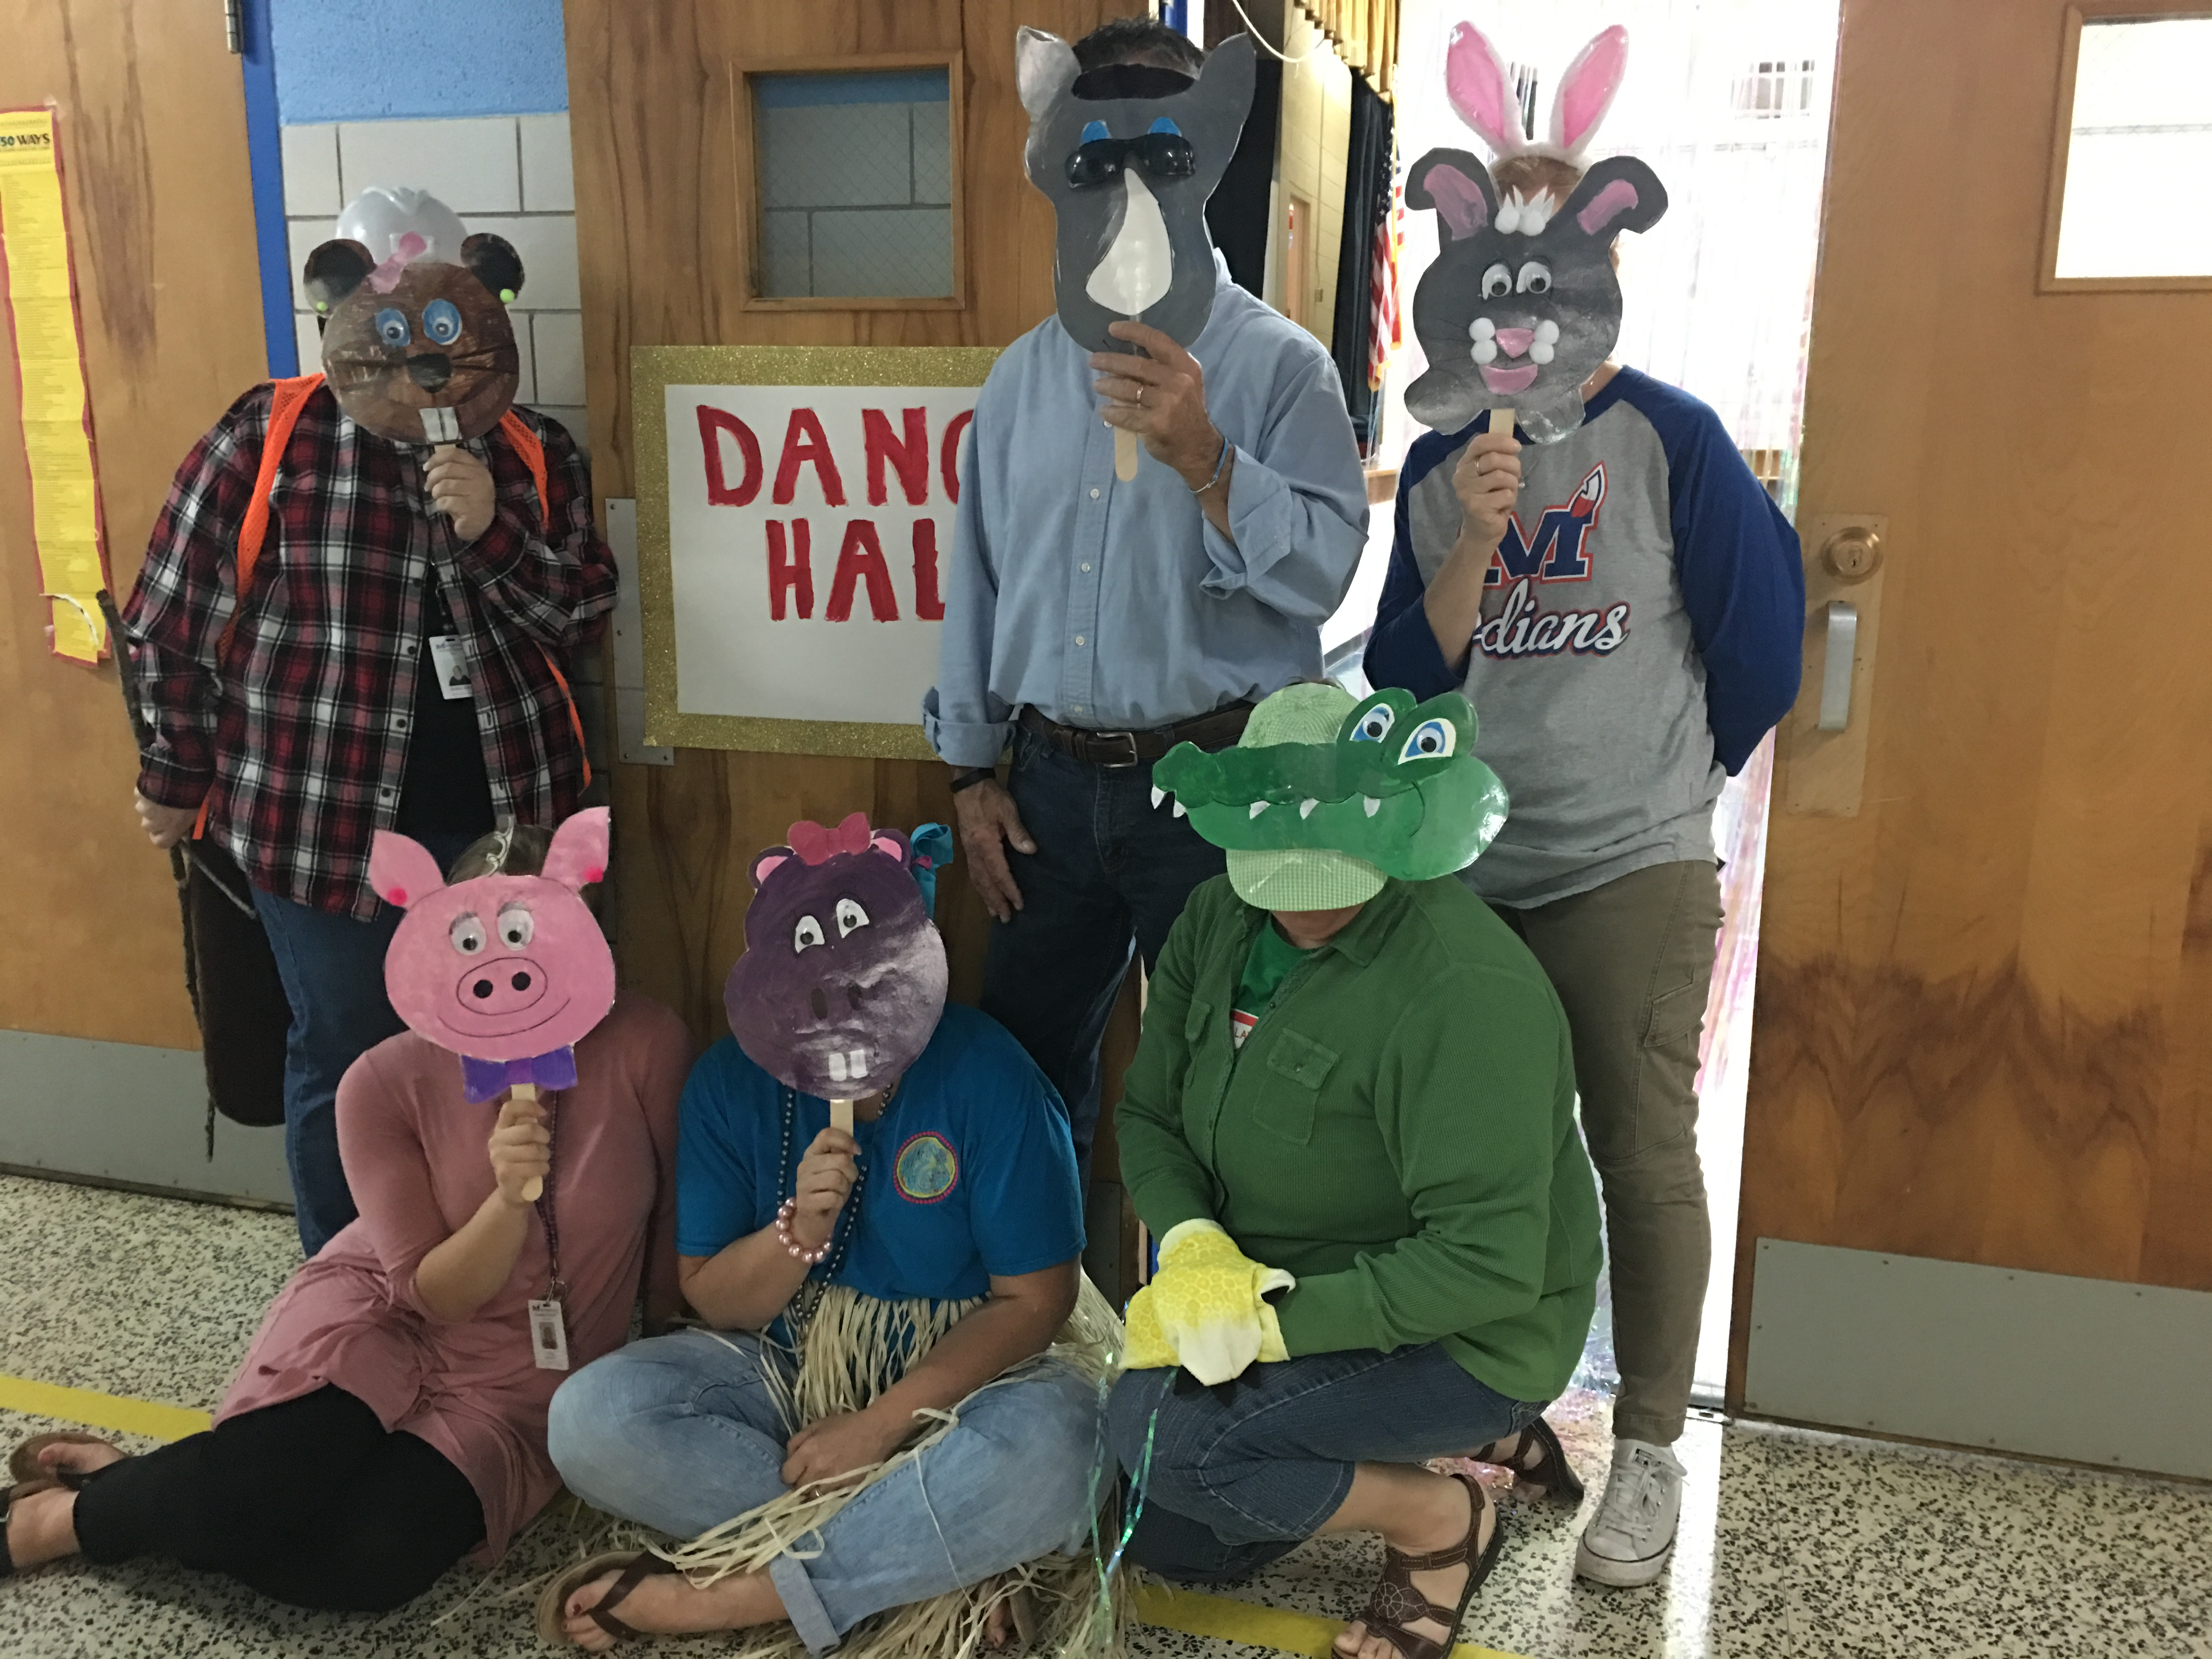 Staff dressed up as characters from the book Dance.